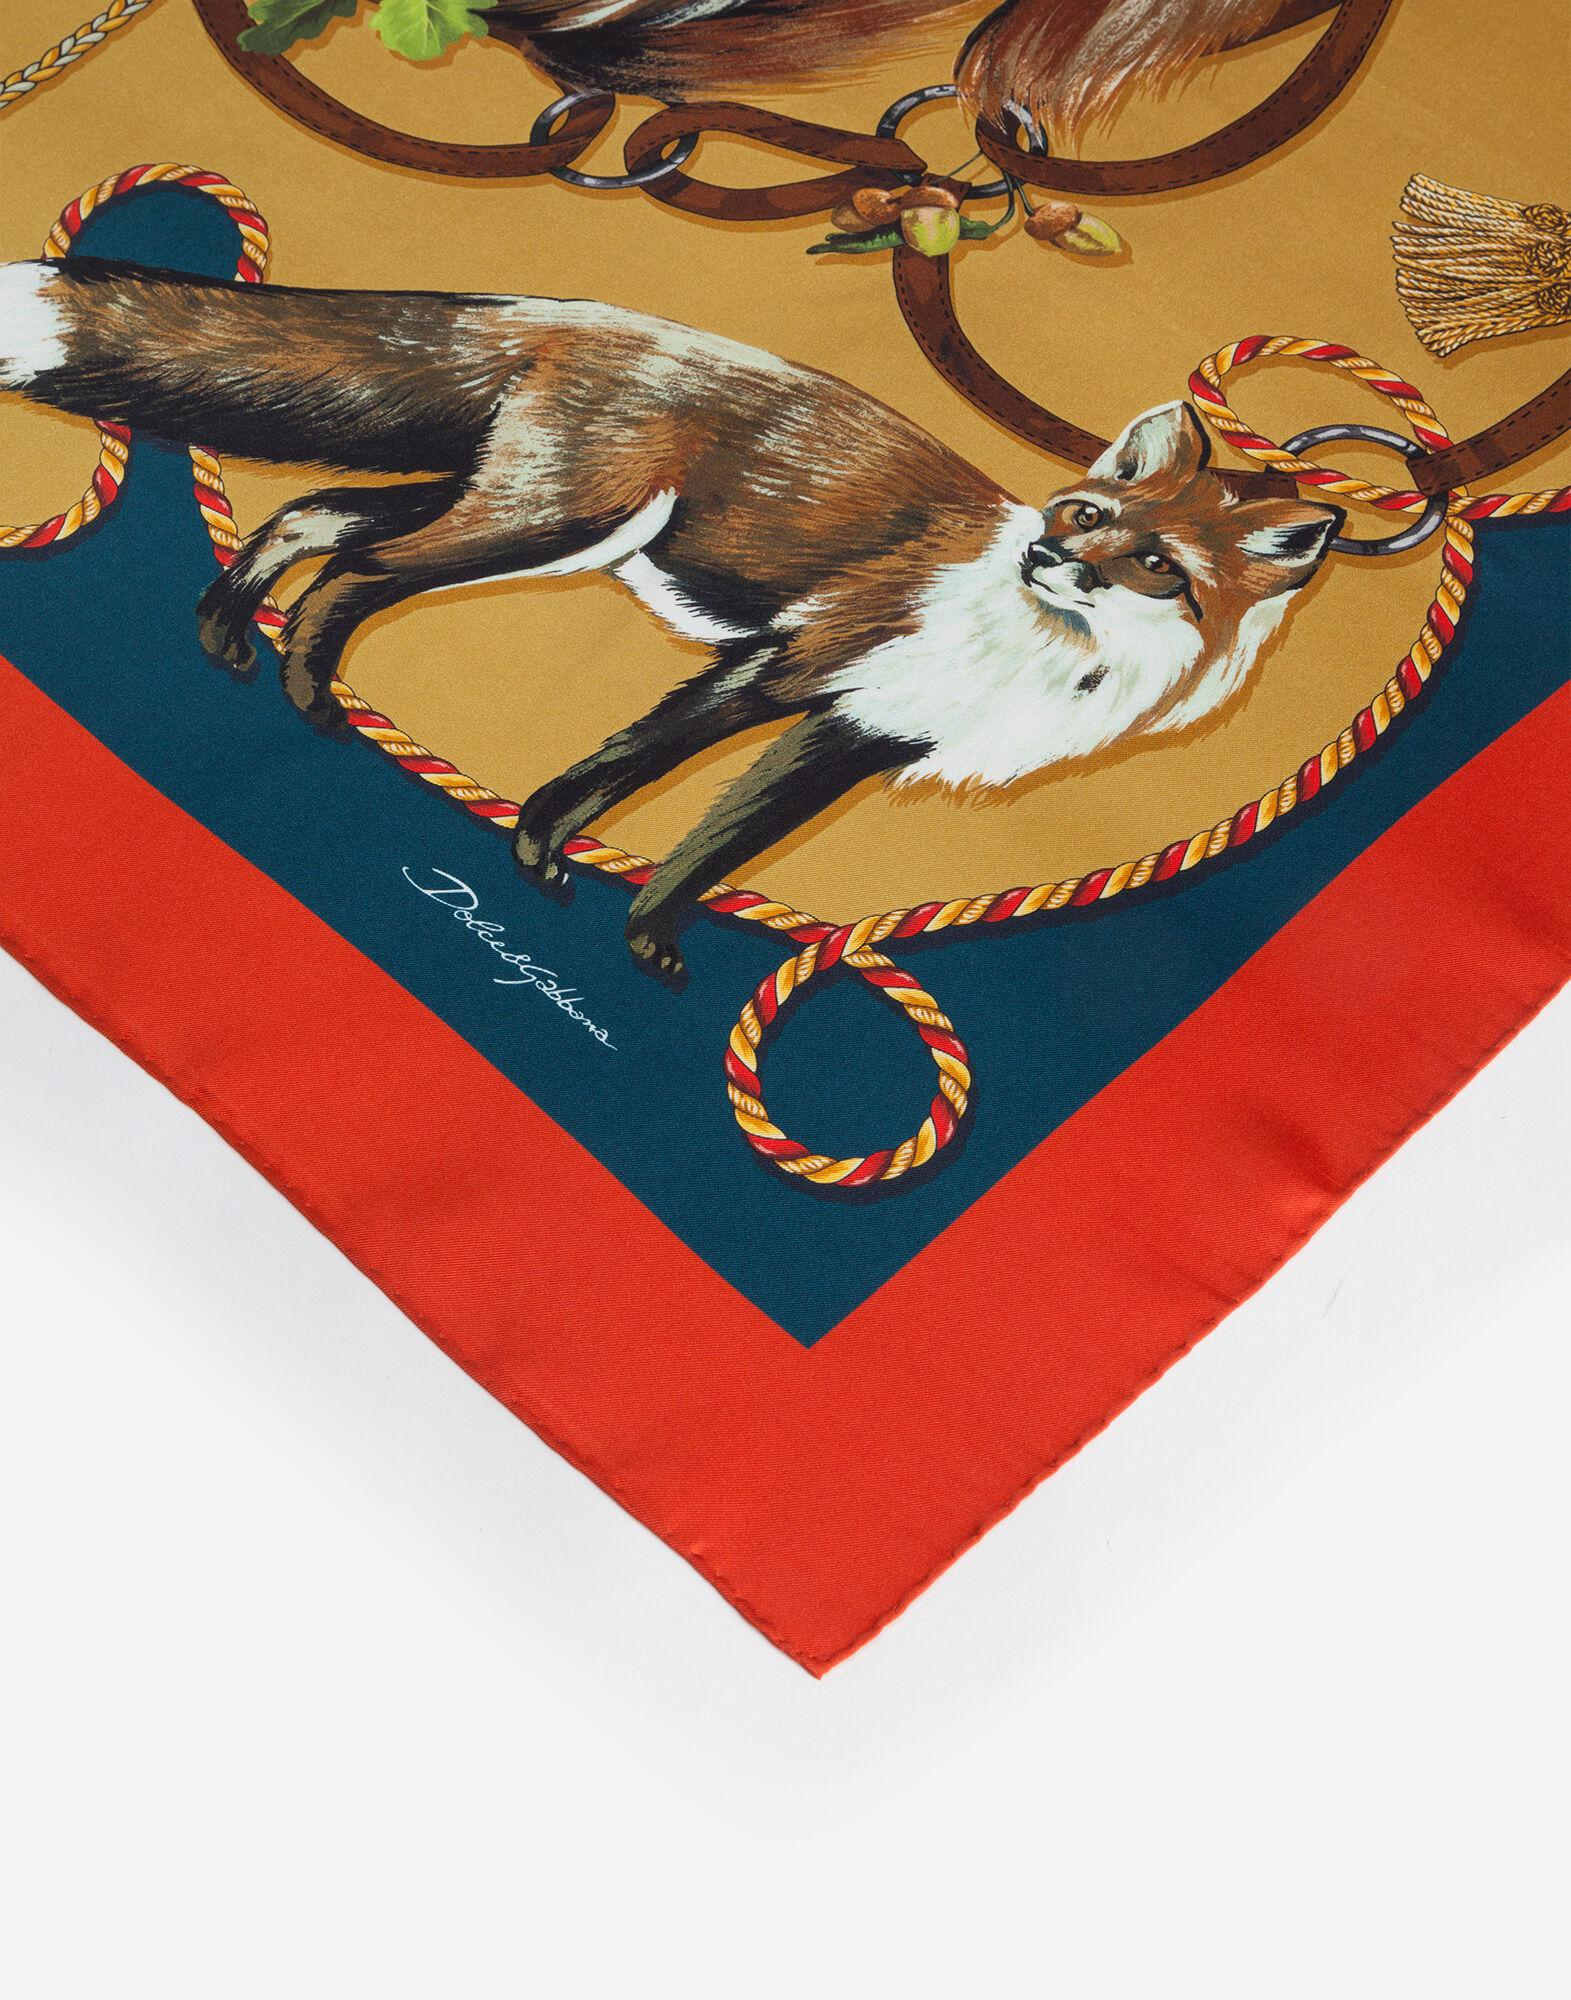 Twill foulard with animals of the forest print: 90 x 90cm - 35 x 35 inches 1